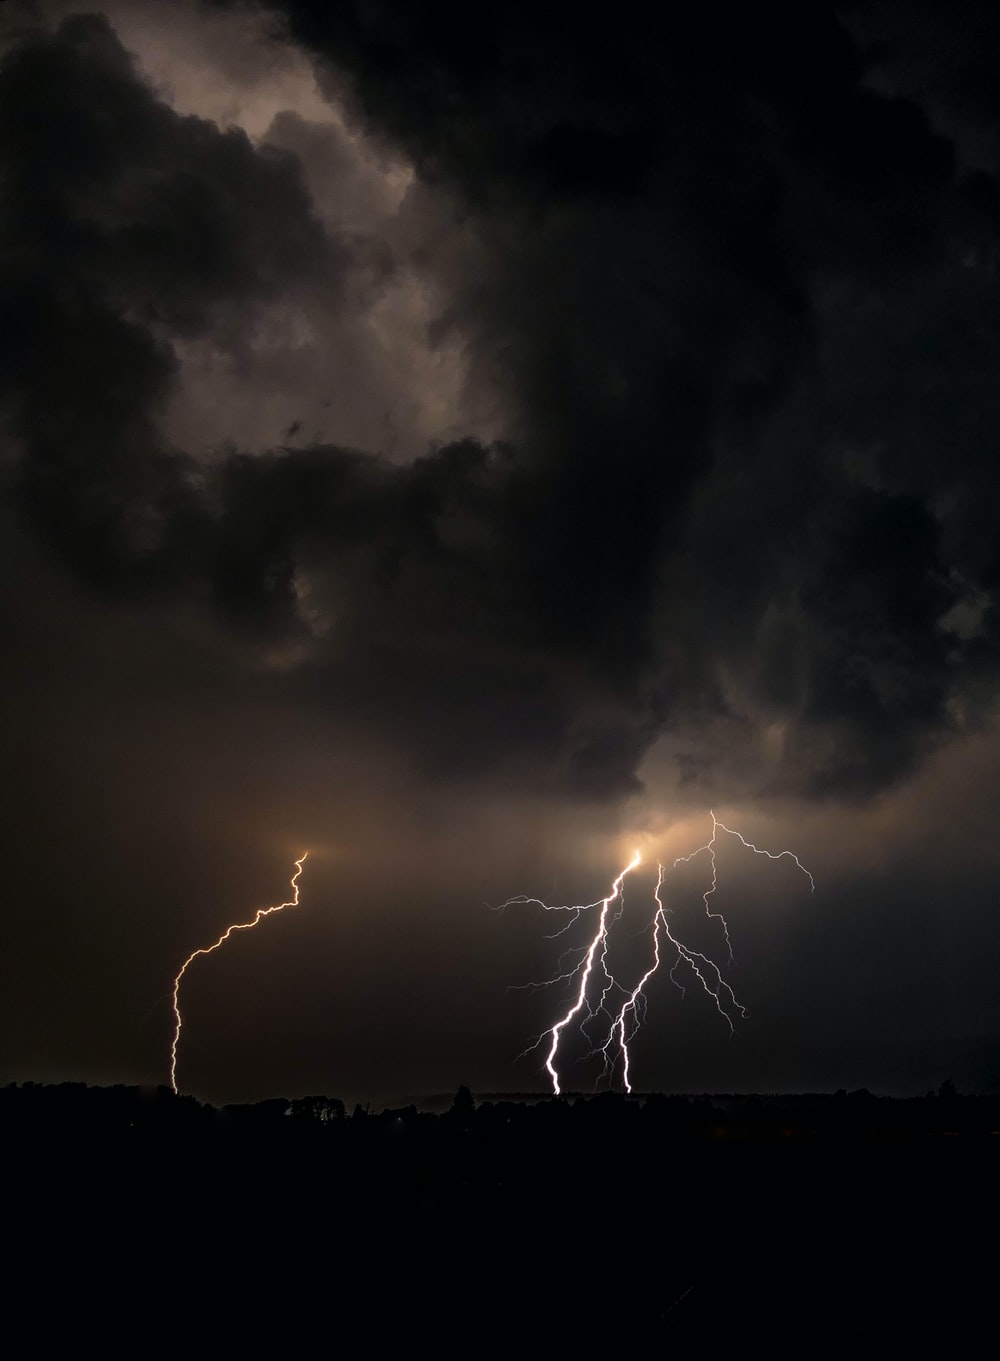 time lapse photography of lightning during storm